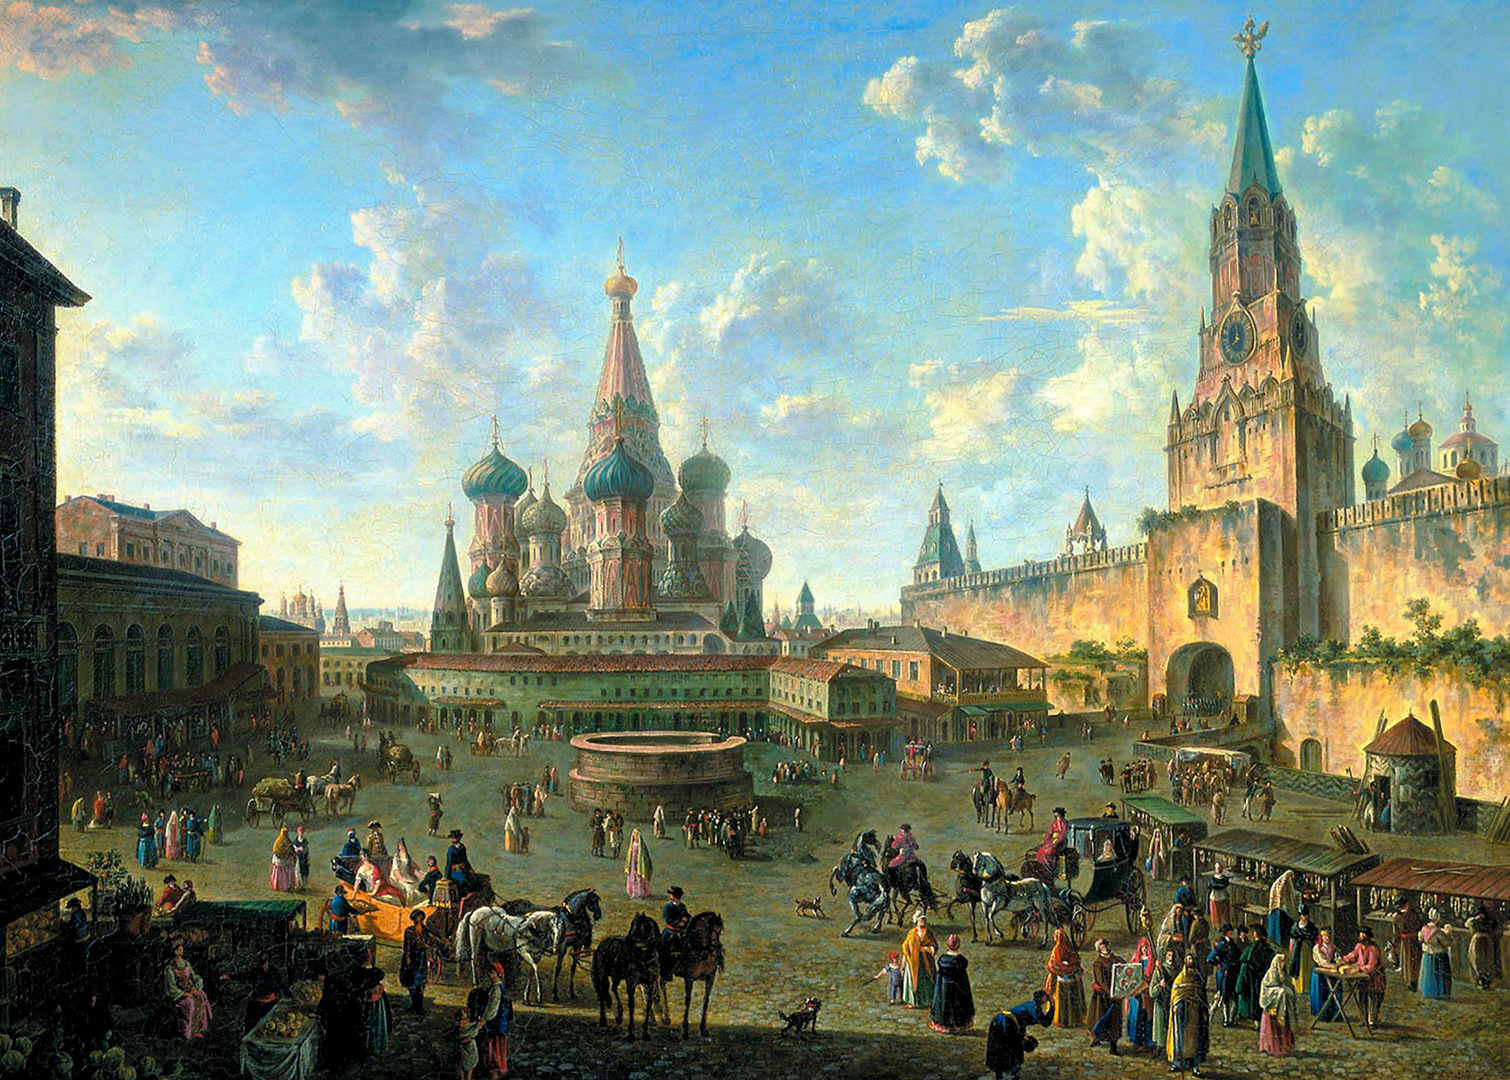 Red Square in Moscow with St. Basil's Cathedral in the center of it.